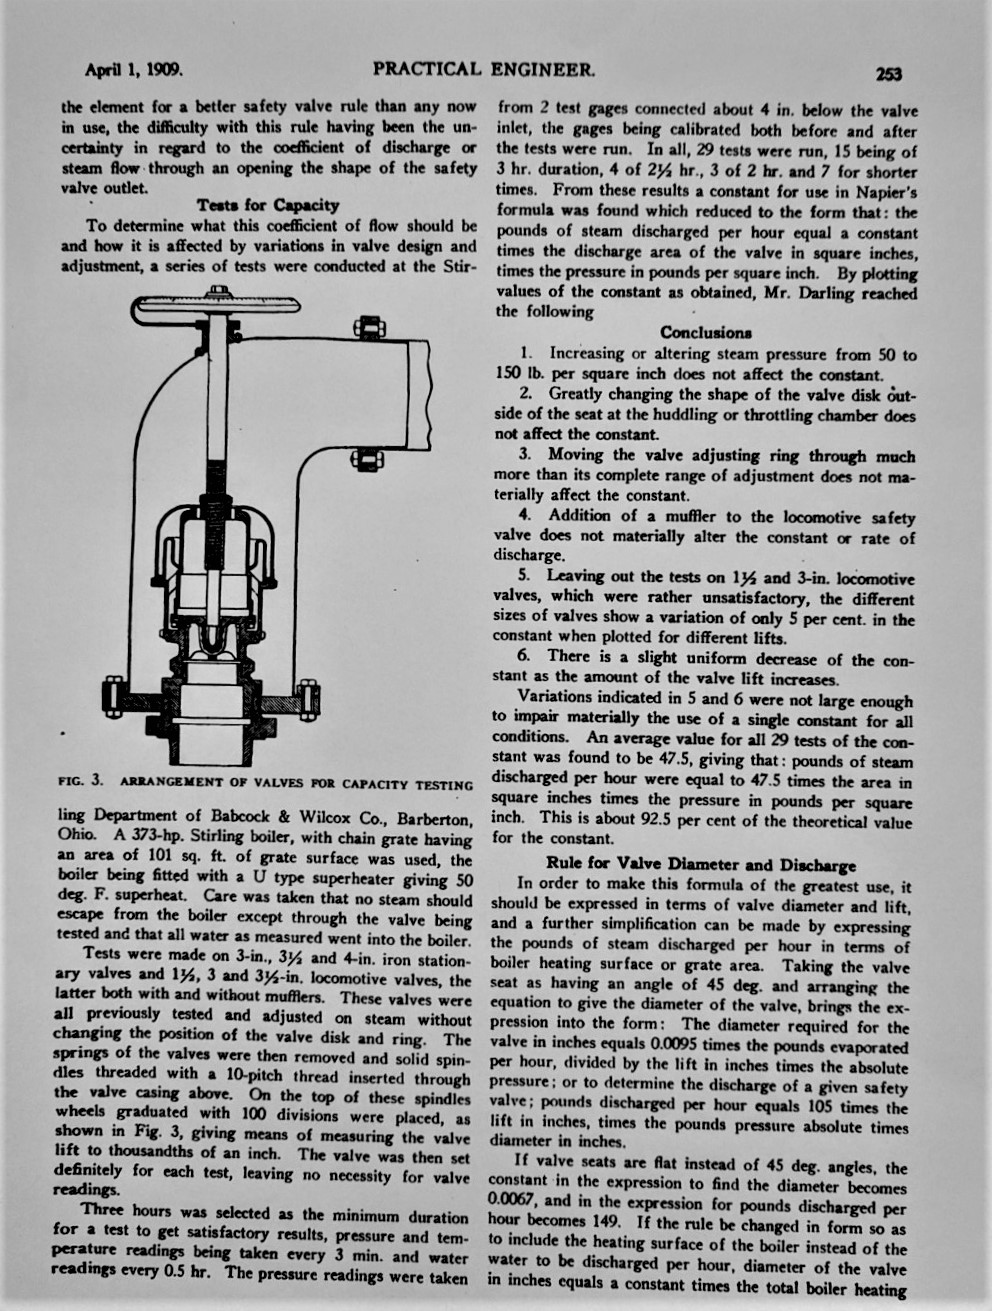 safety valve sizes 1909  3.jpg